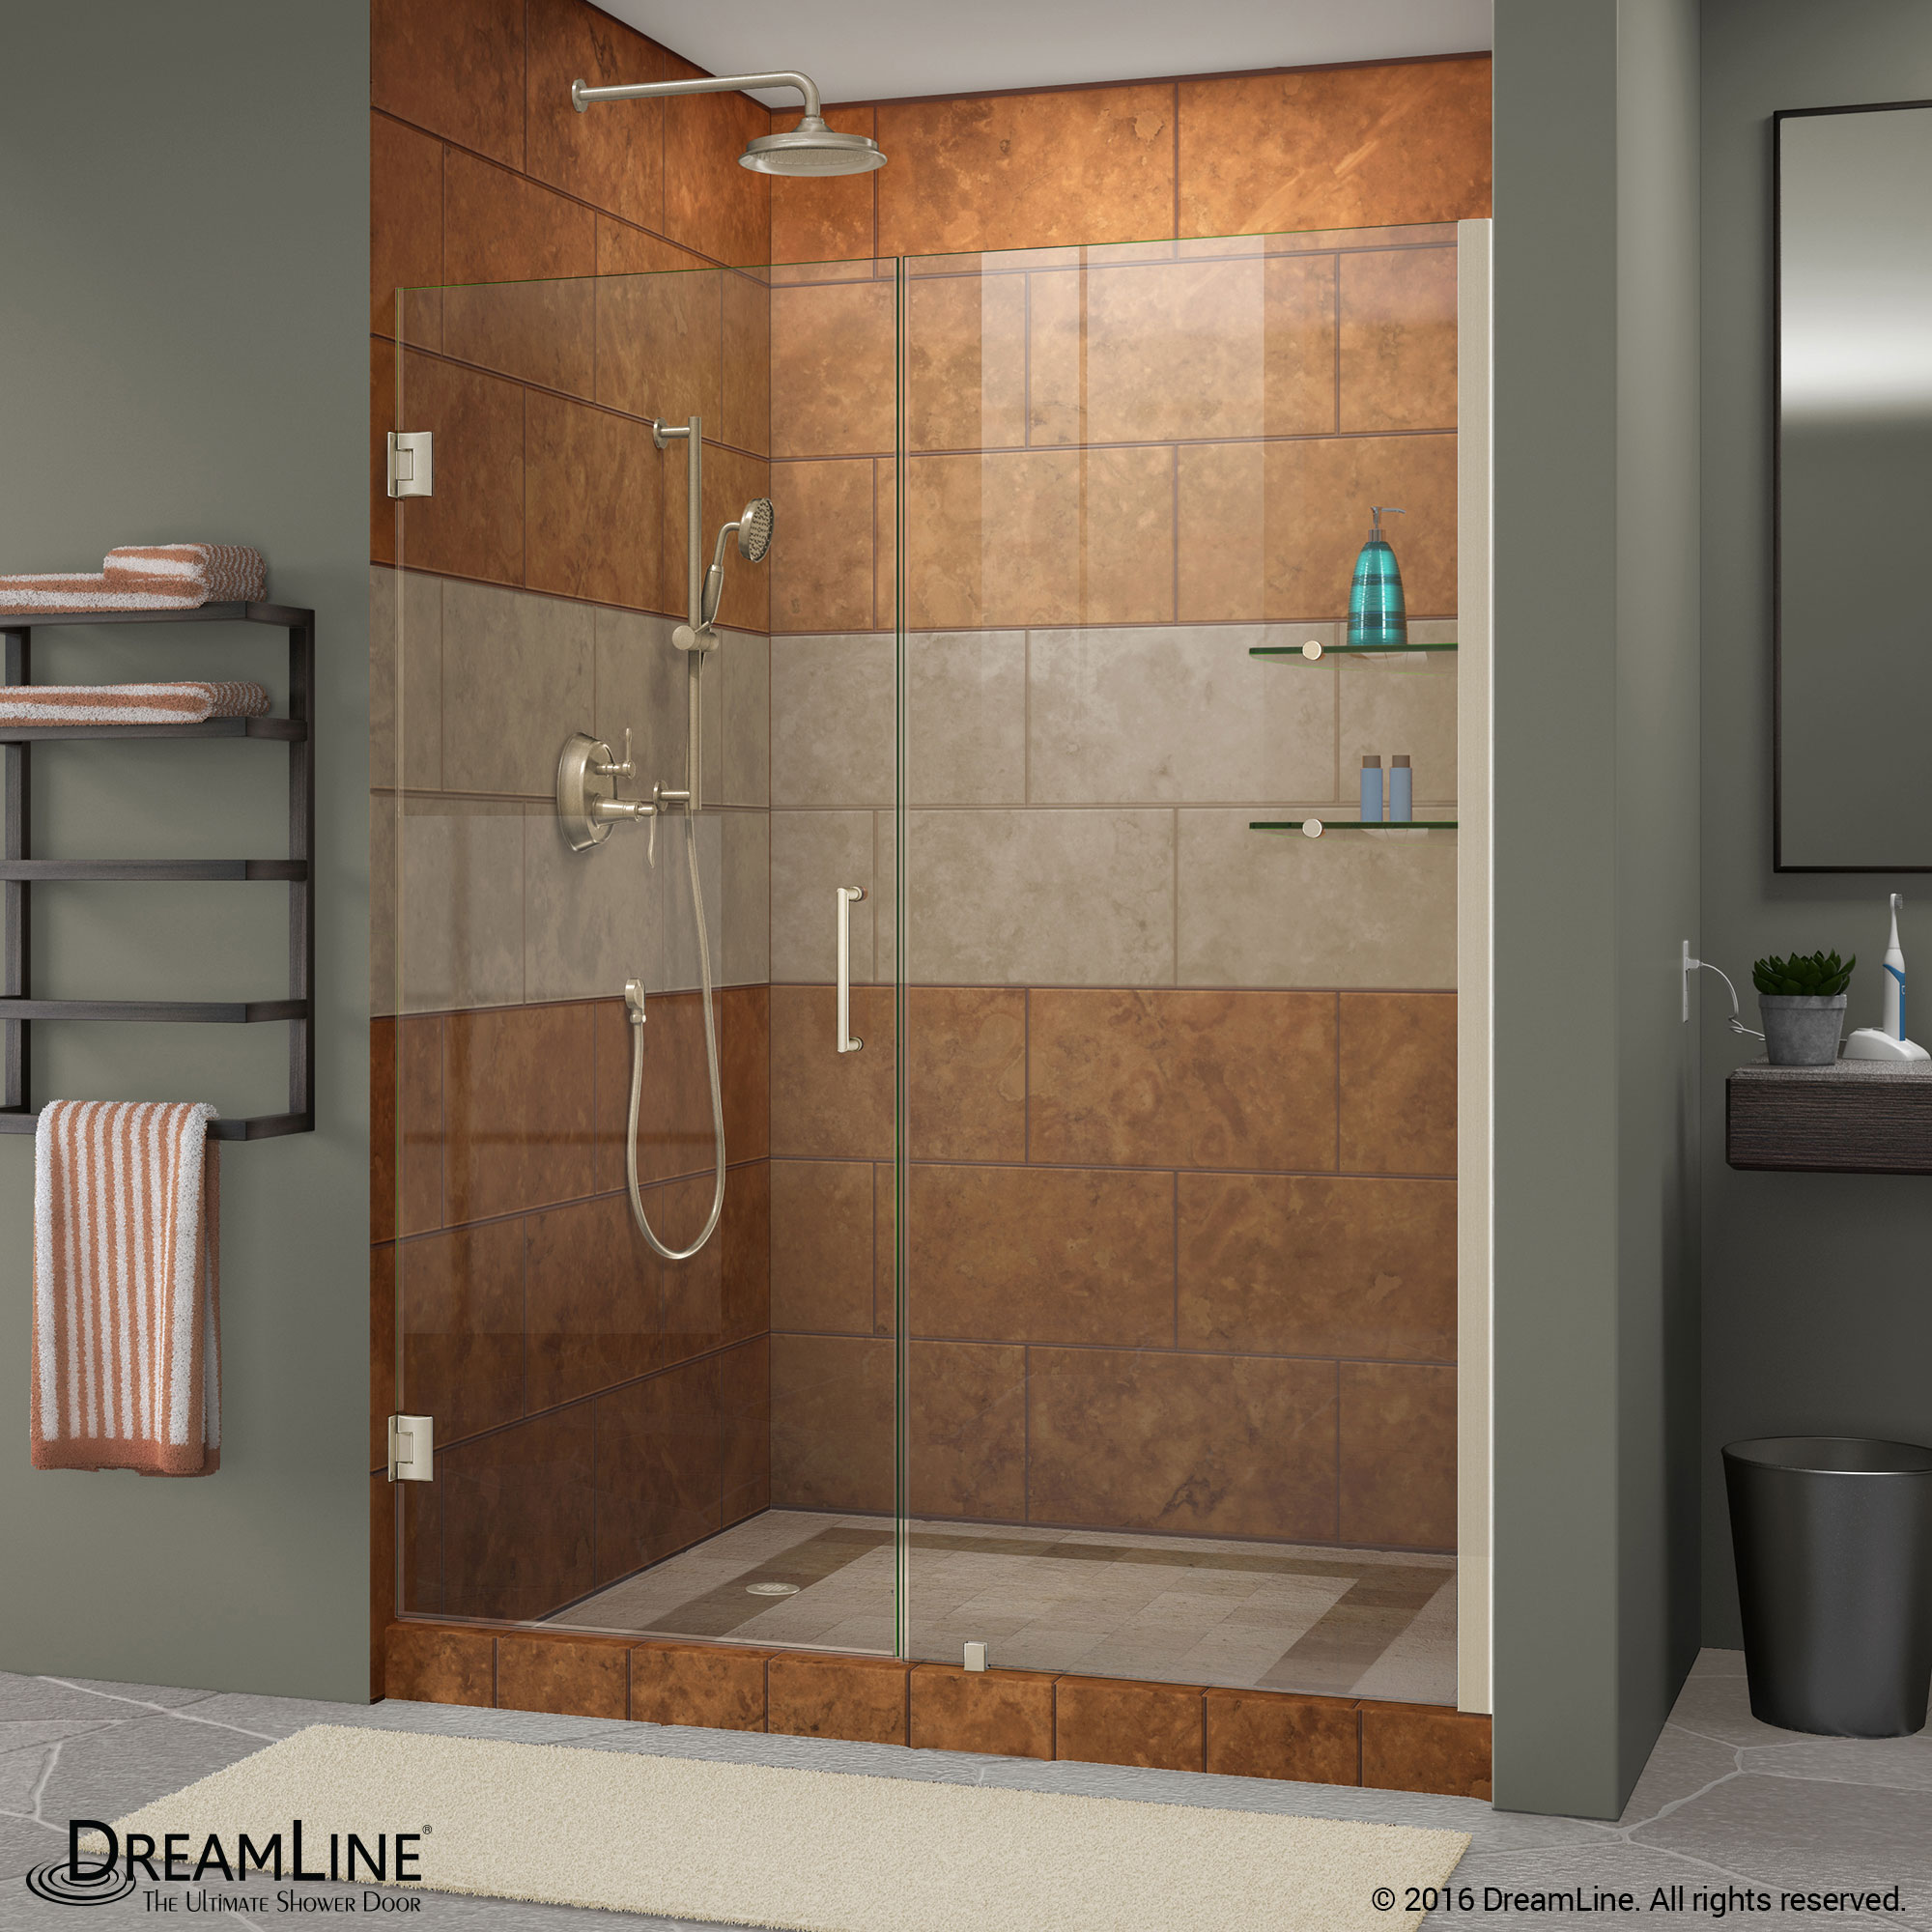 Image is loading DreamLine-Unidoor-Min-47-in-to-Max-48- & DreamLine Unidoor Min 47 in. to Max 48 in. Frameless Hinged Shower ...